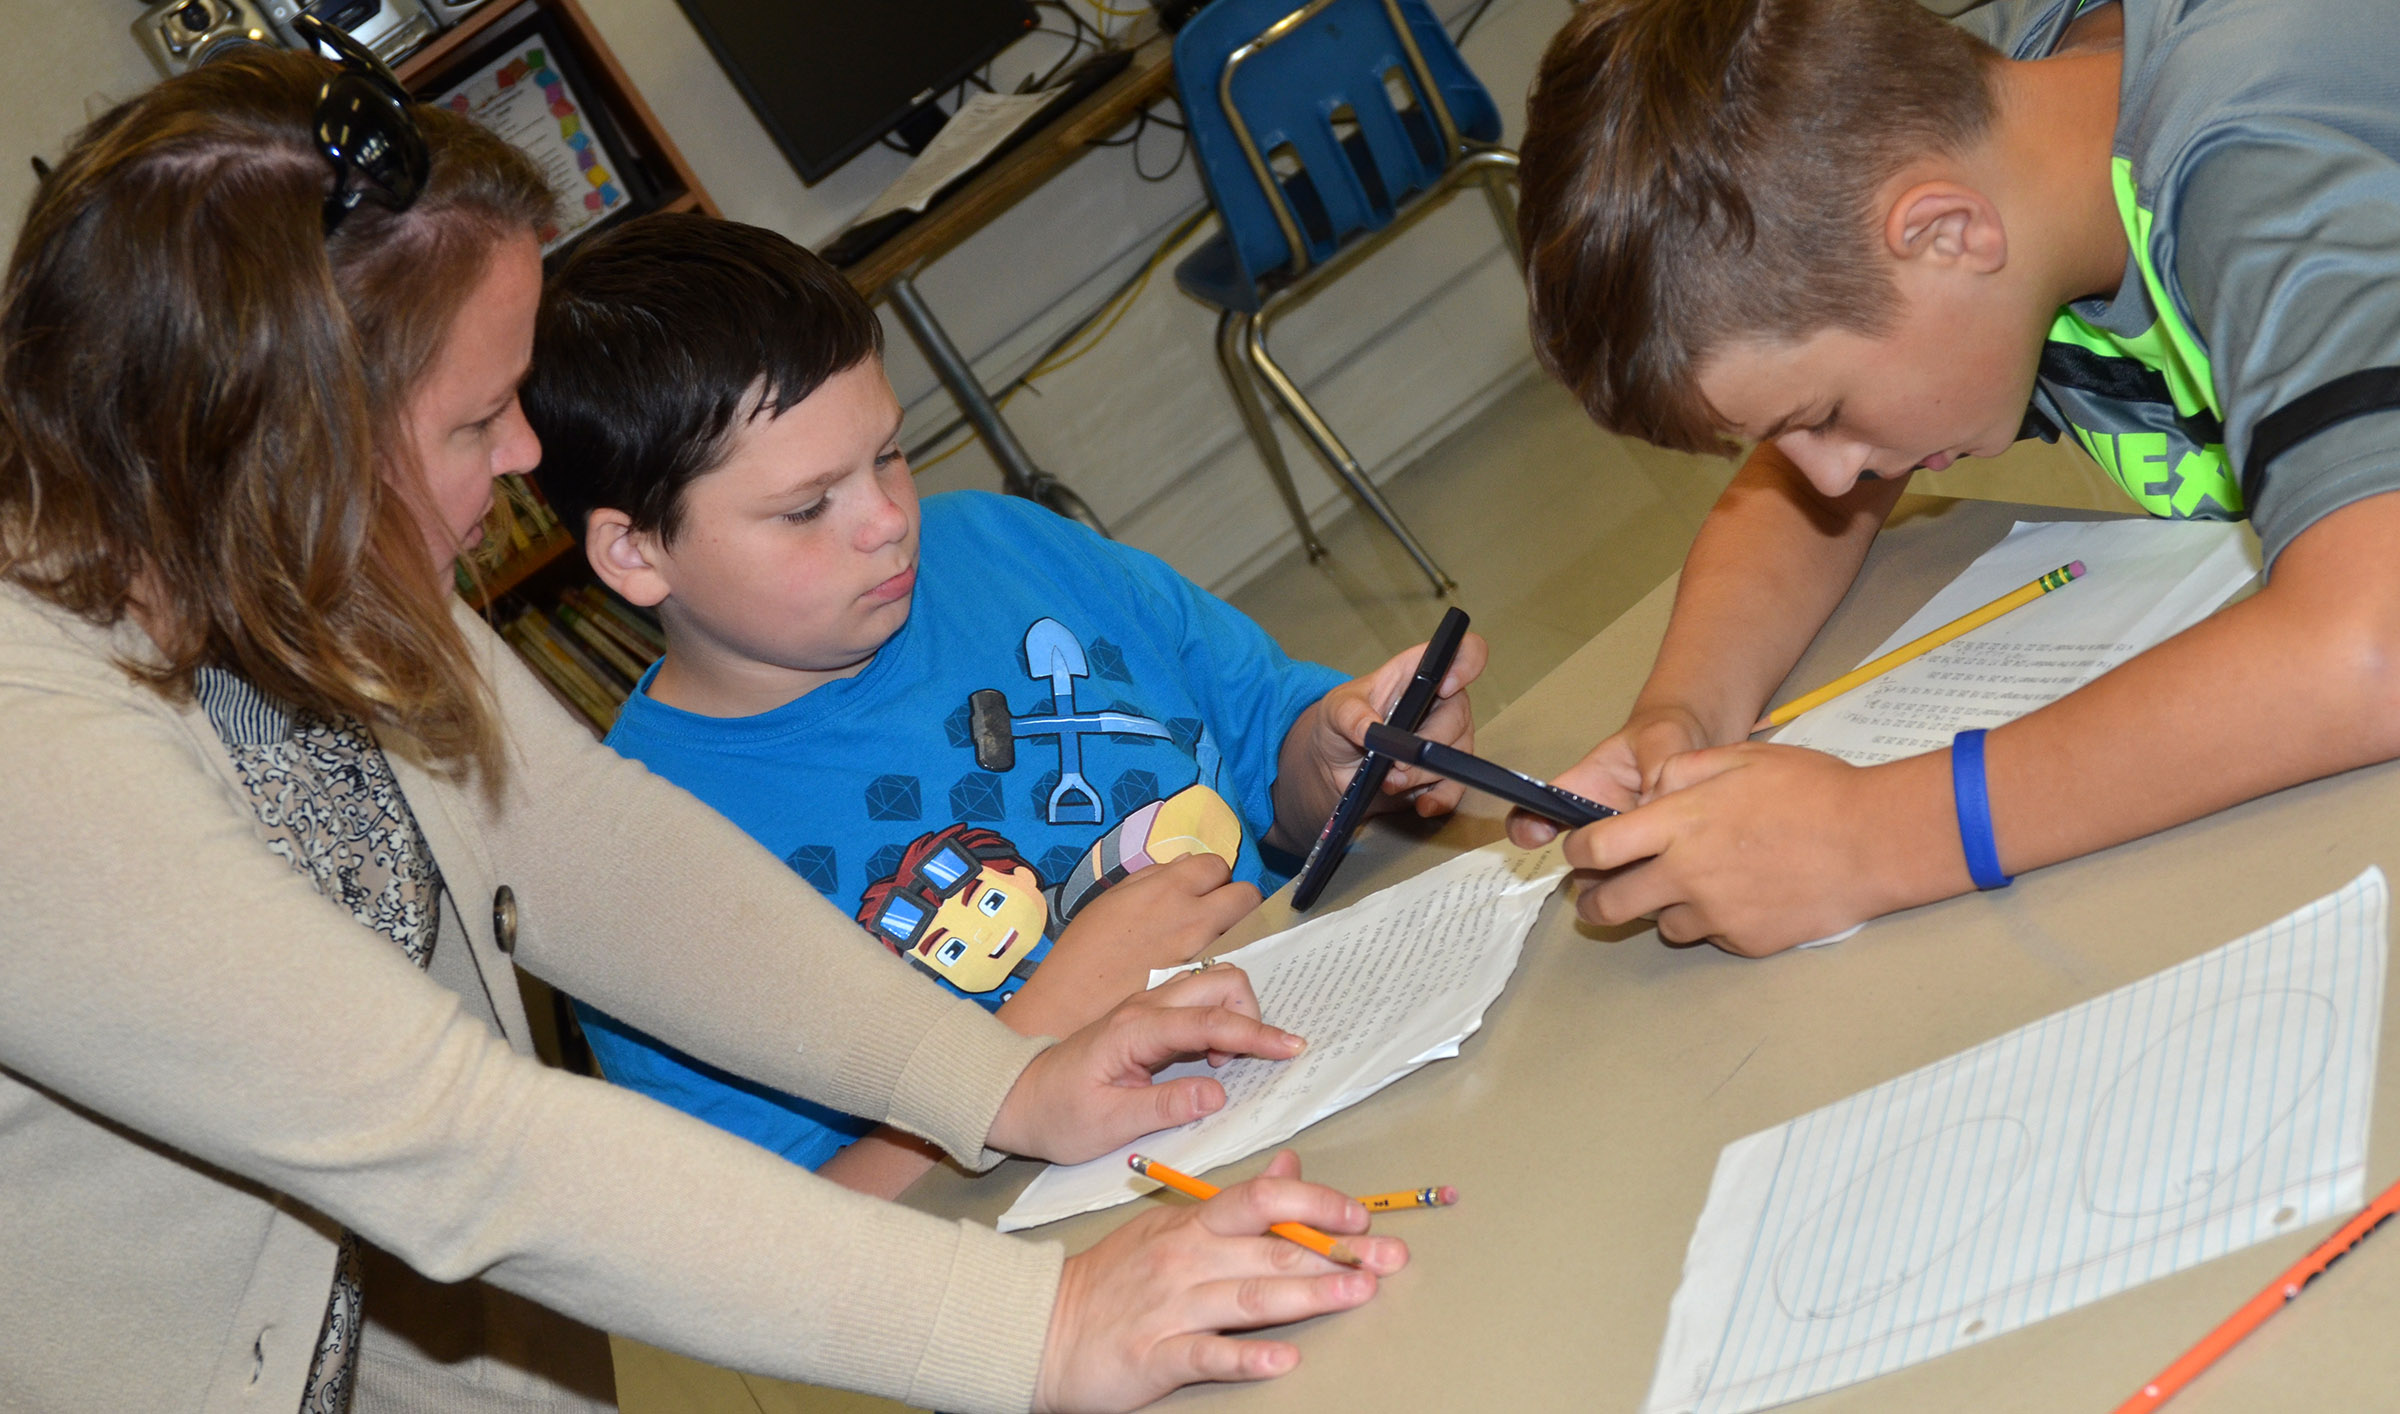 CMS teacher Katie Campbell helps sixth-graders Gregory Burton, at left, and Jaxon Sidebottom find the mode of a set of numbers.